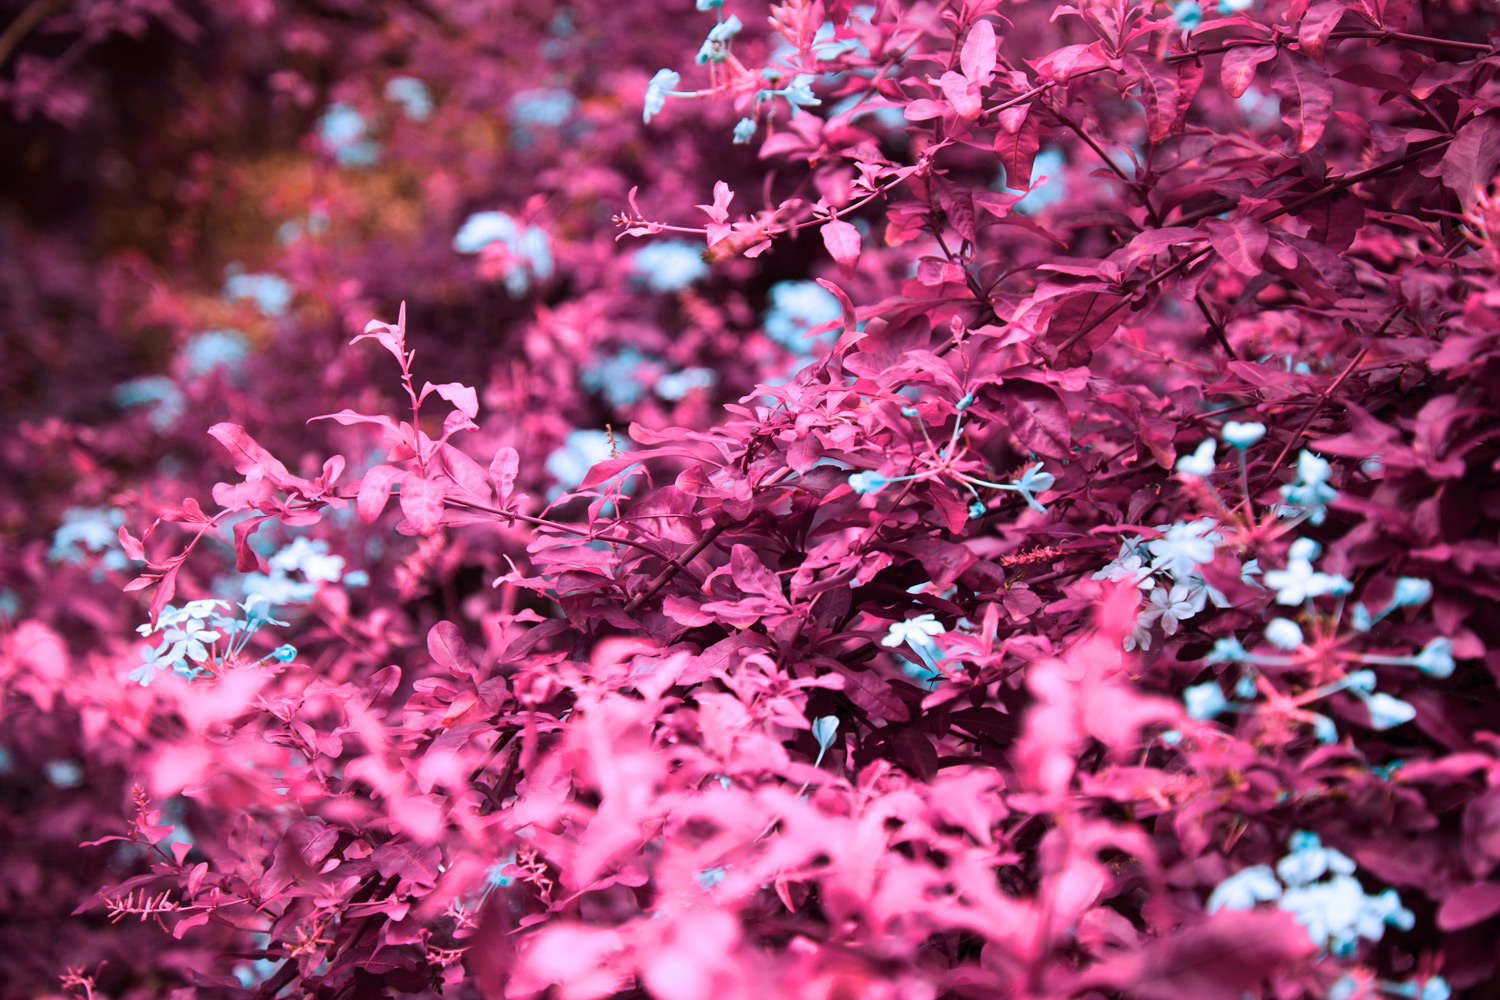 Image: Infrared technology and effects render green organic matter in pinks and purples